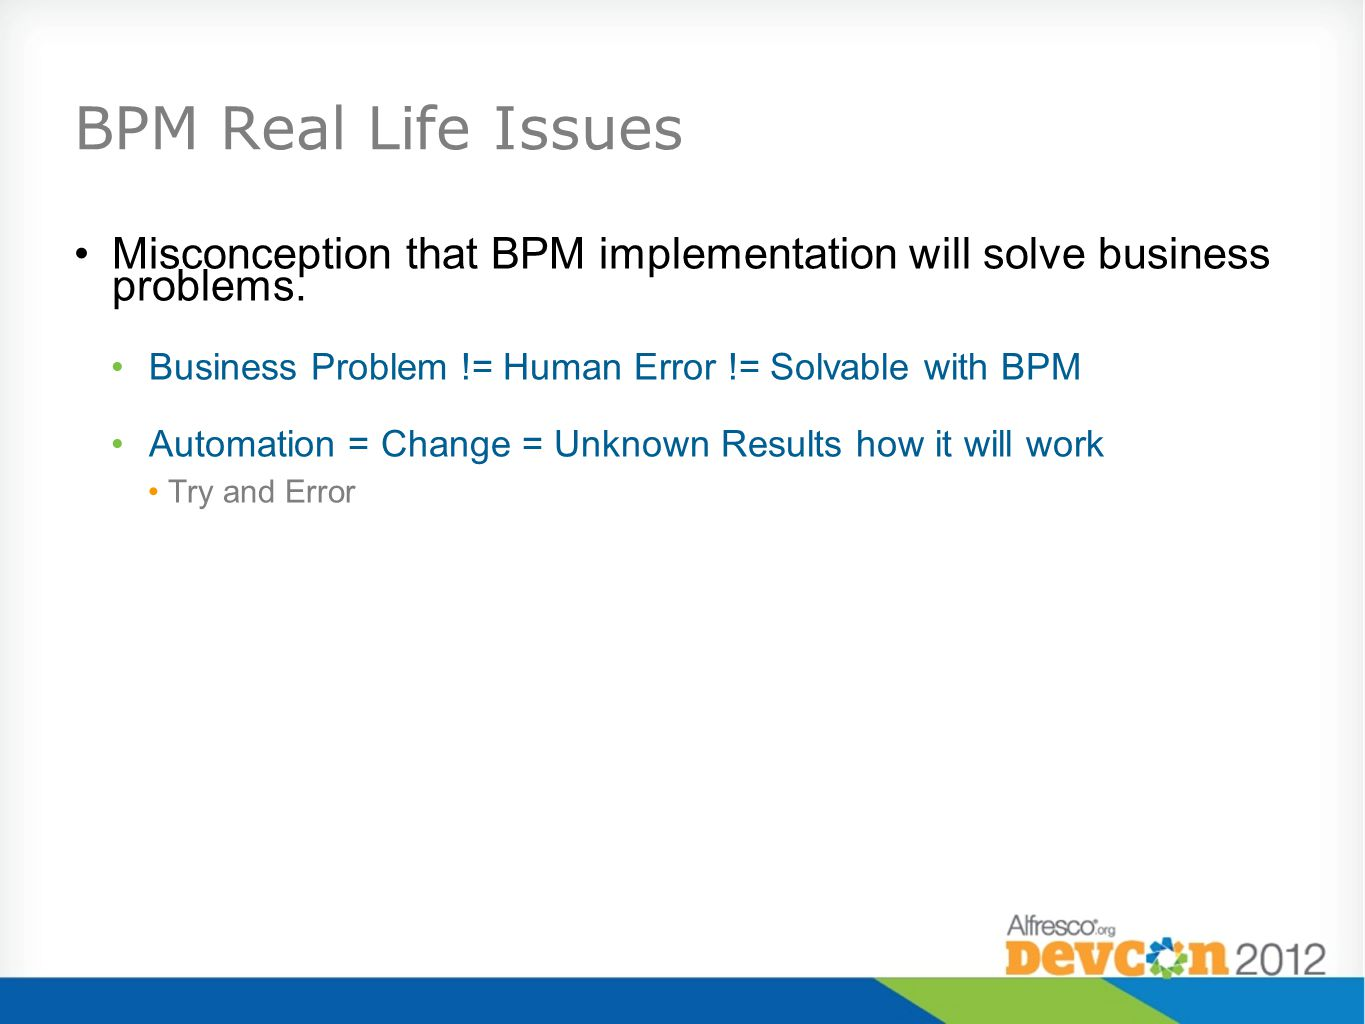 BPM Real Life Issues Misconception that BPM implementation will solve business problems.